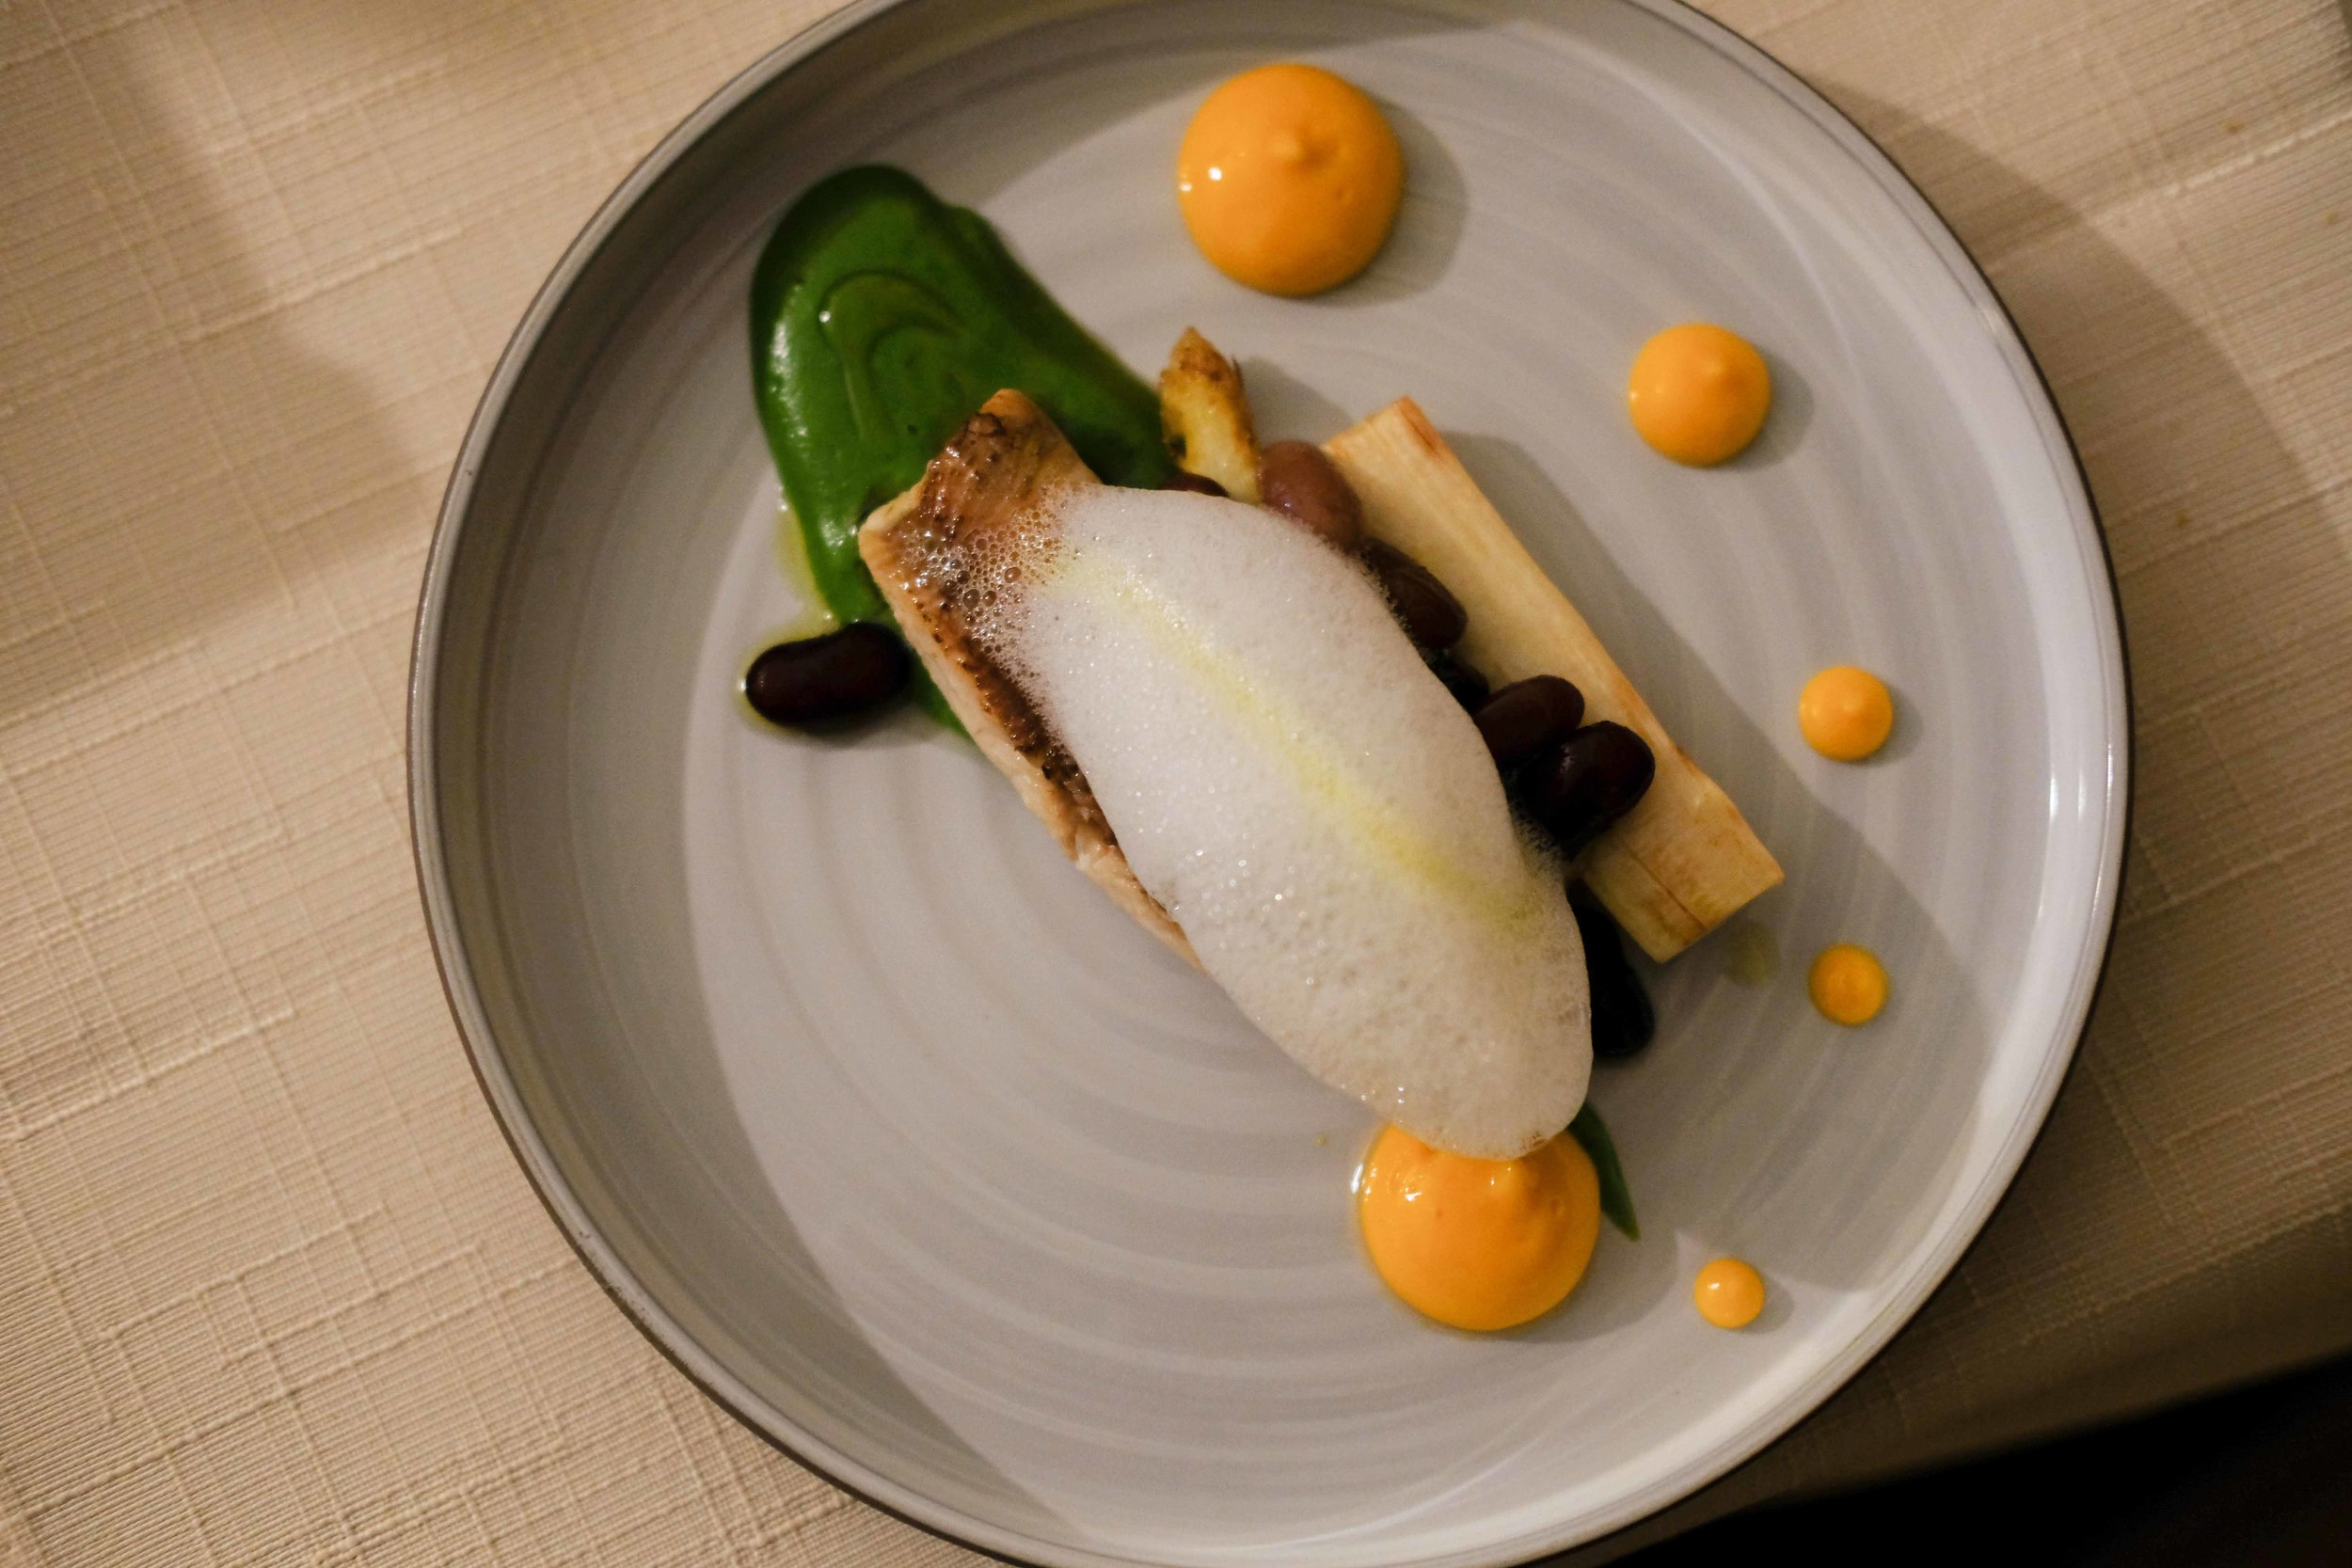 River trout on prosciutto and covered with lemon foam, white asparagus with sweet brown beans, green asparagus puree and dots of puree of carrot.